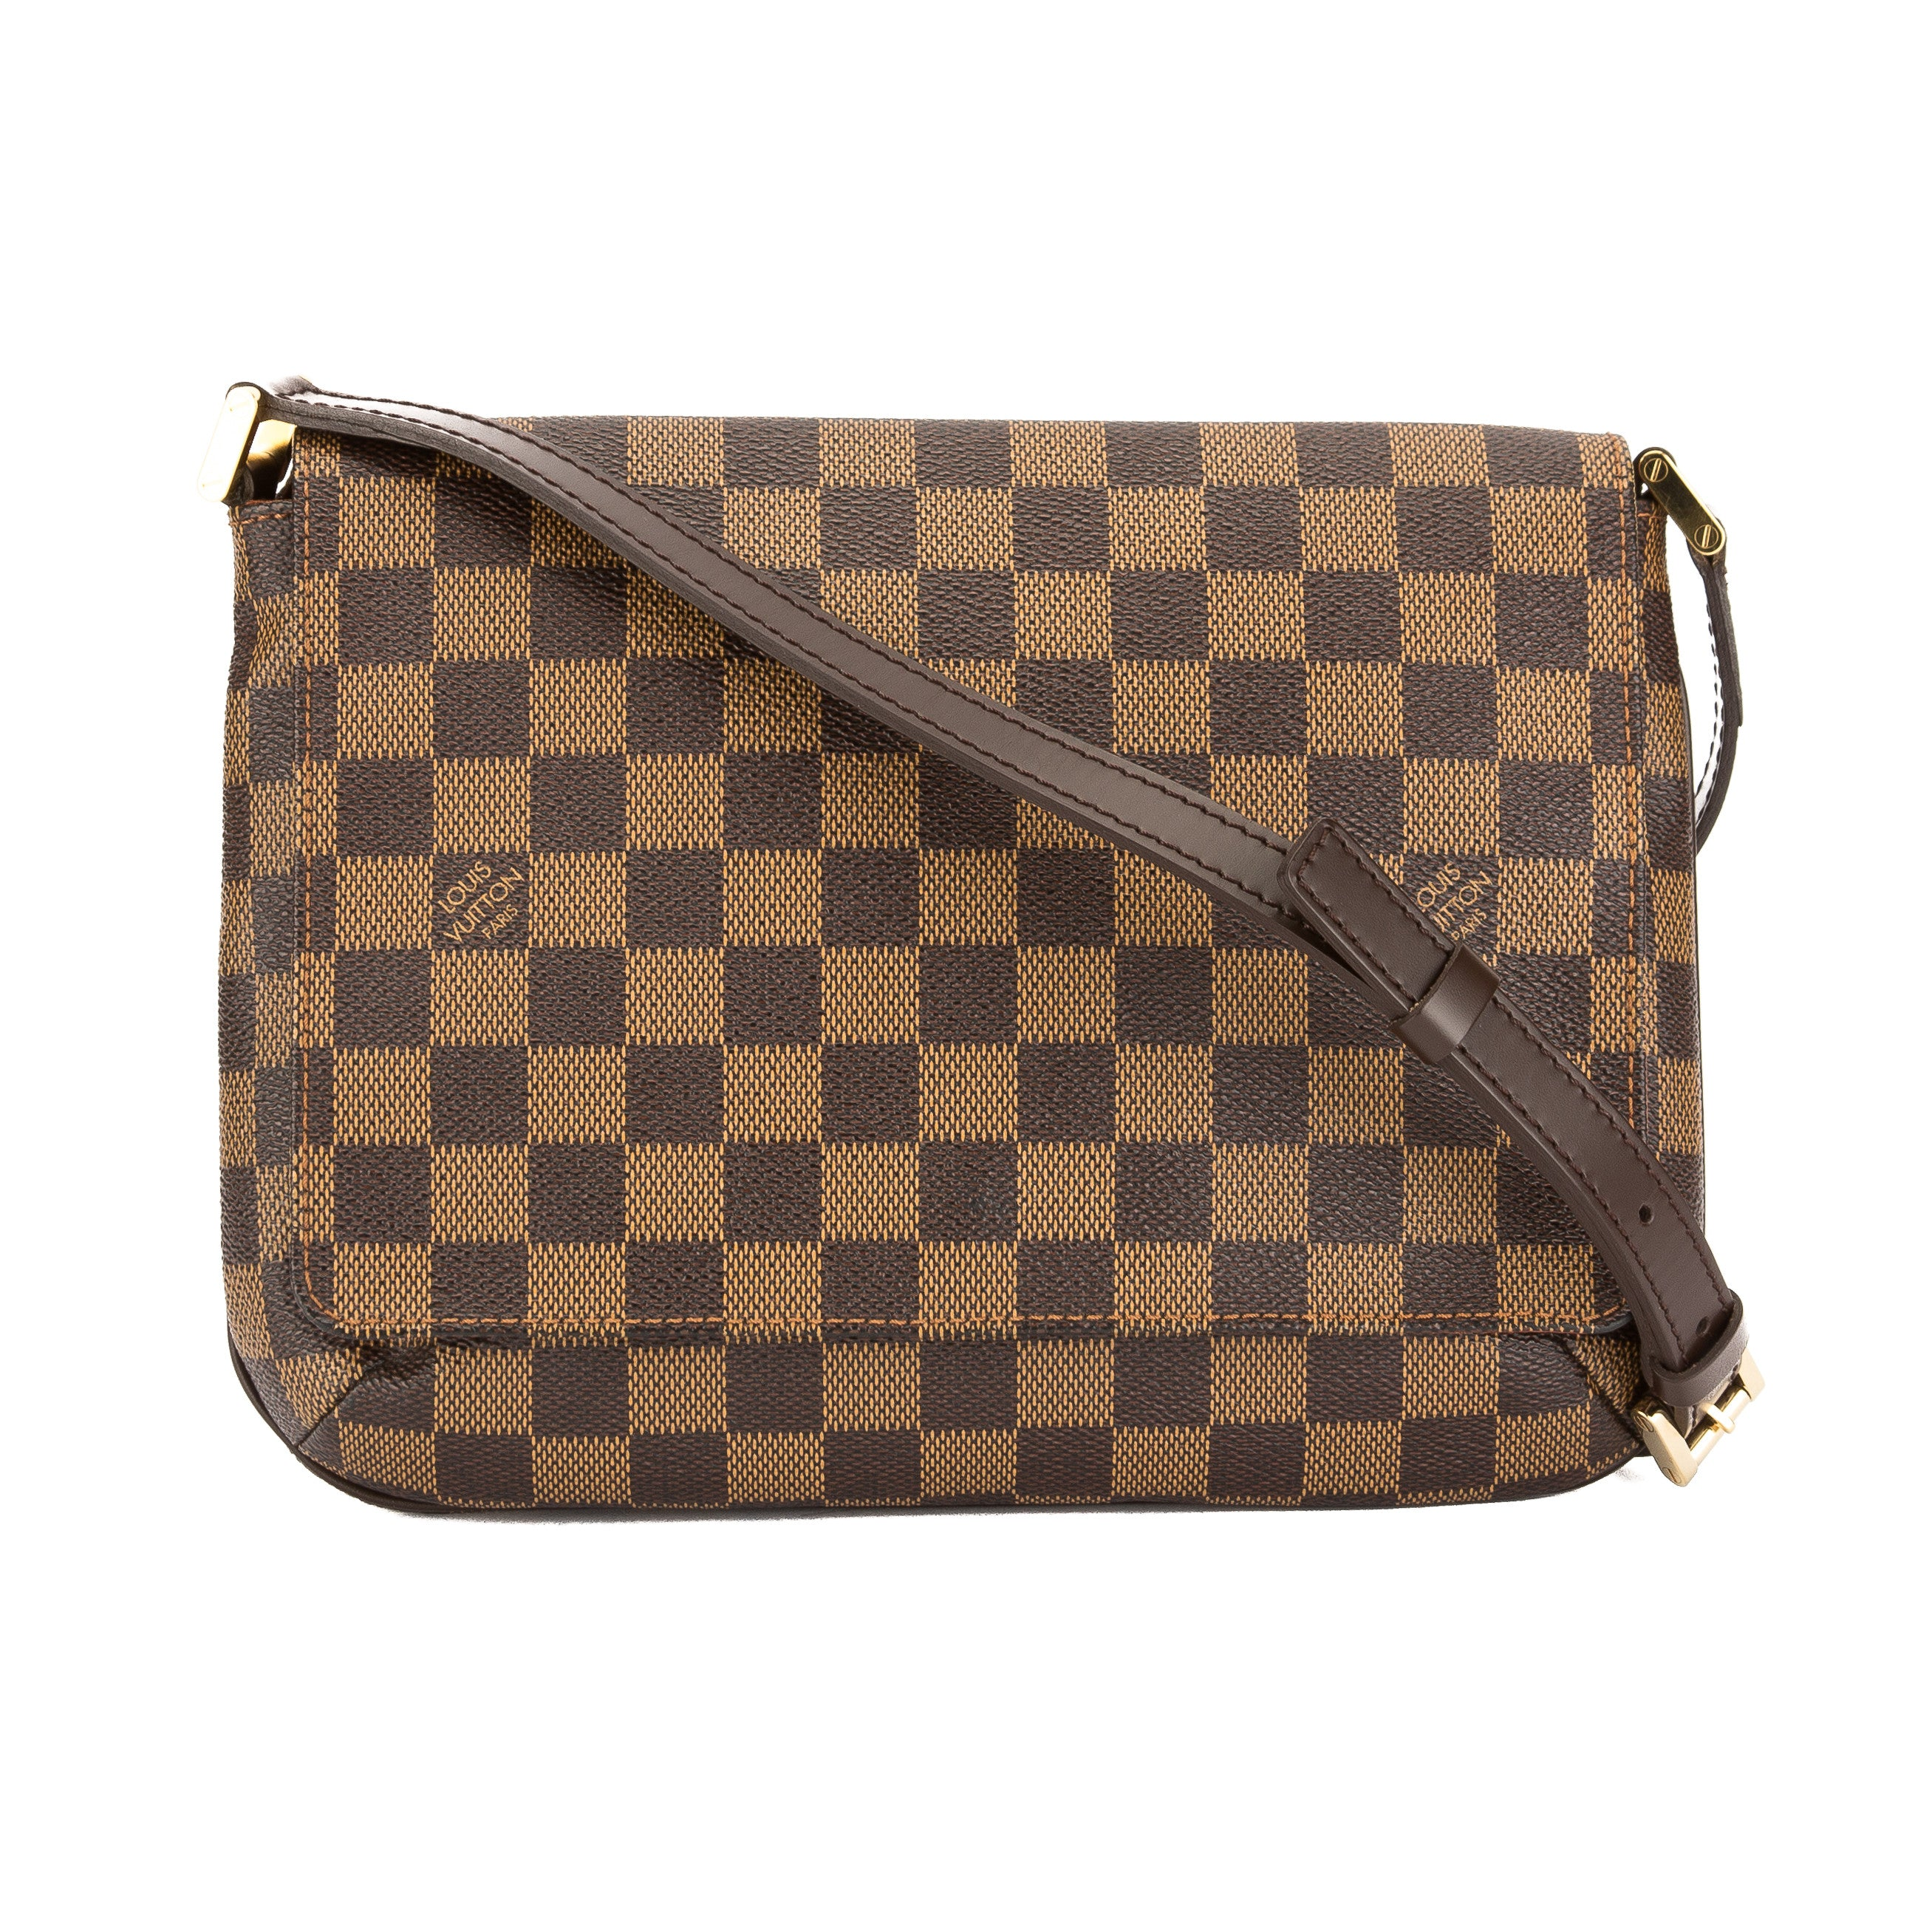 69cf52523ec0 Louis Vuitton Damier Ebene Canvas Musette Tango Long Strap Bag Pre Owned